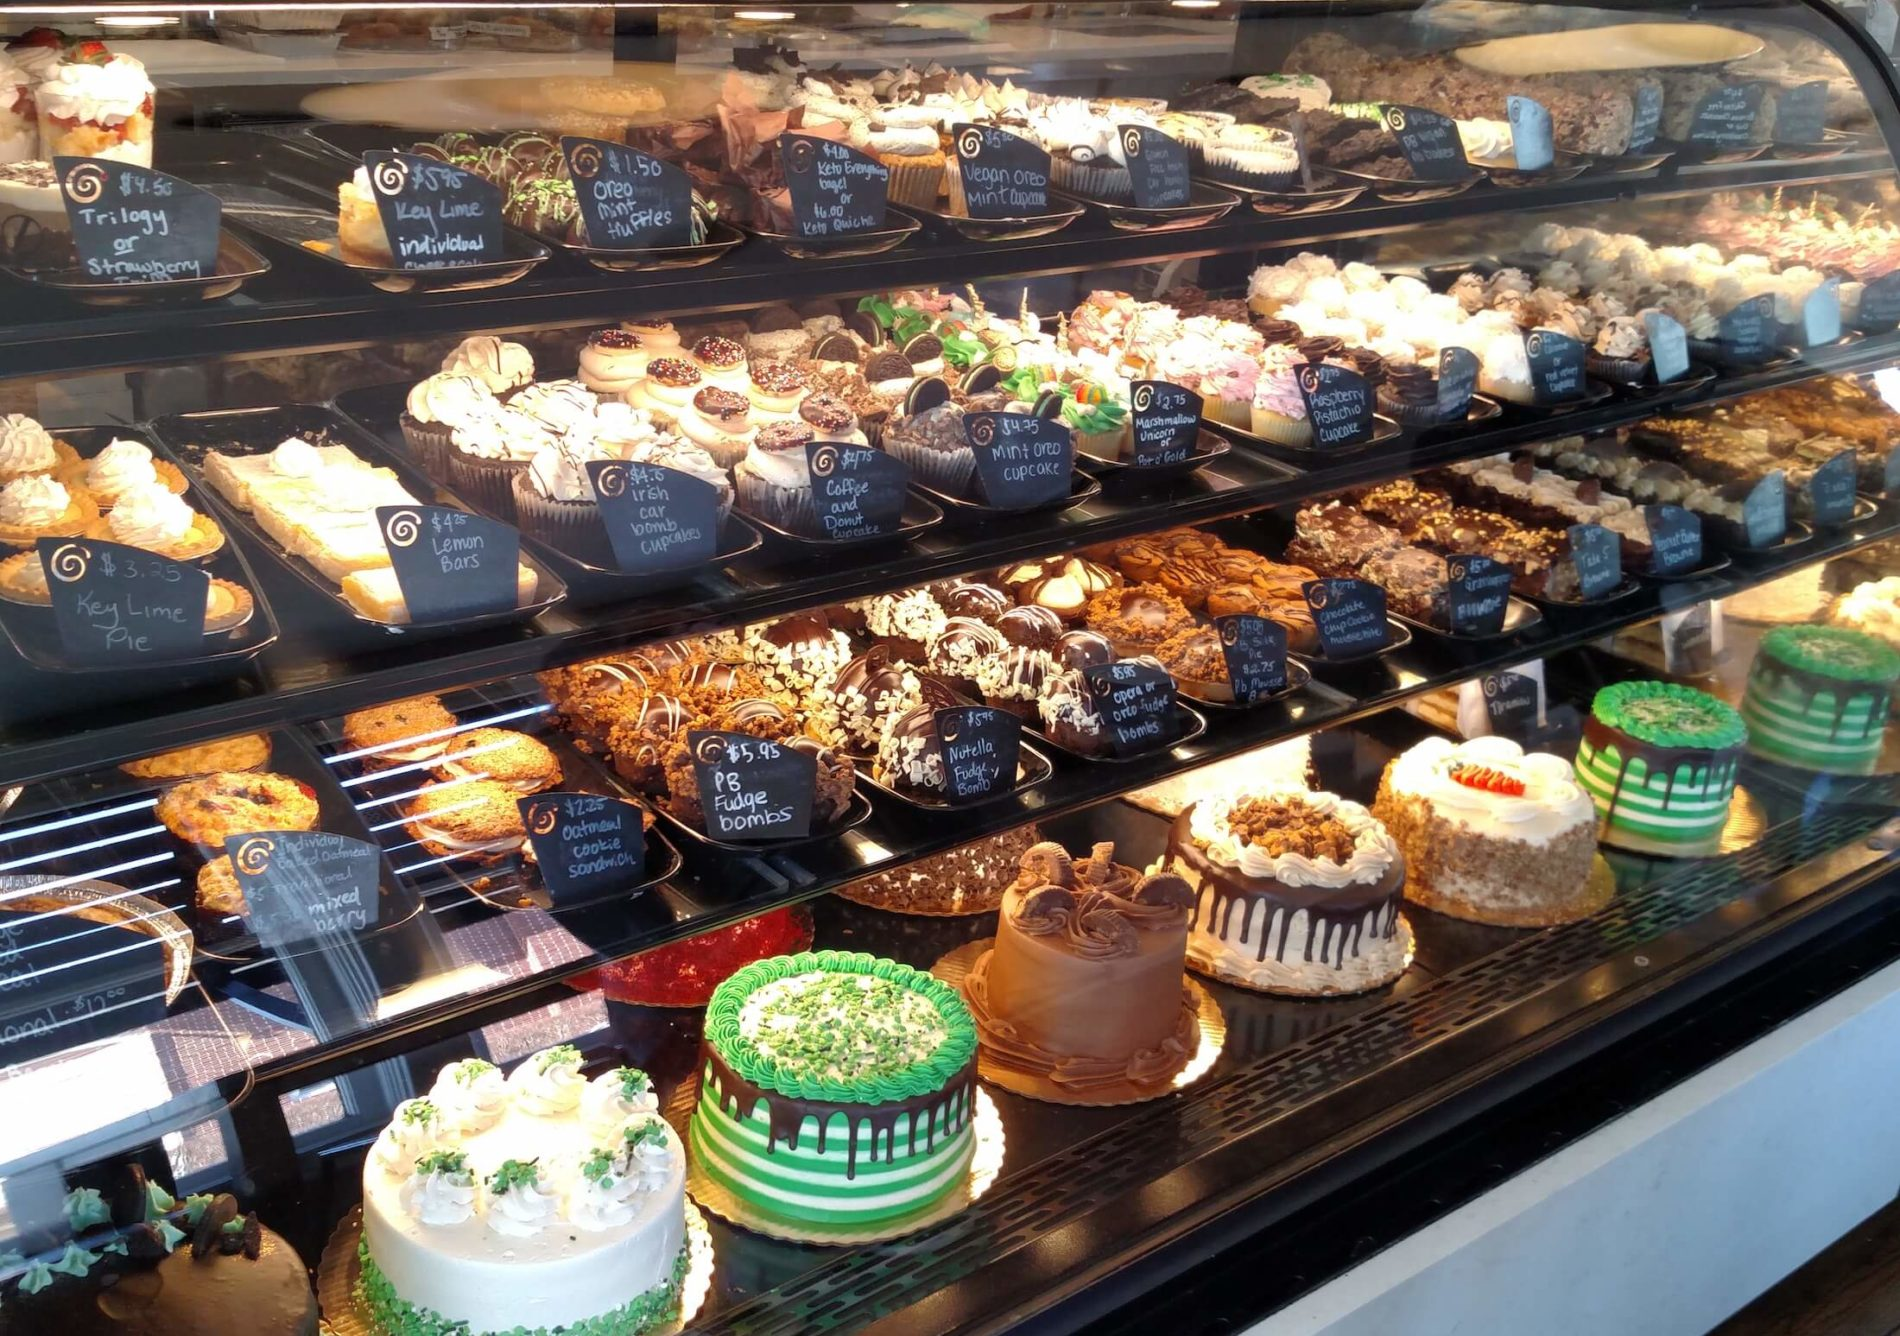 Glass display case with shelves of decadent desserts